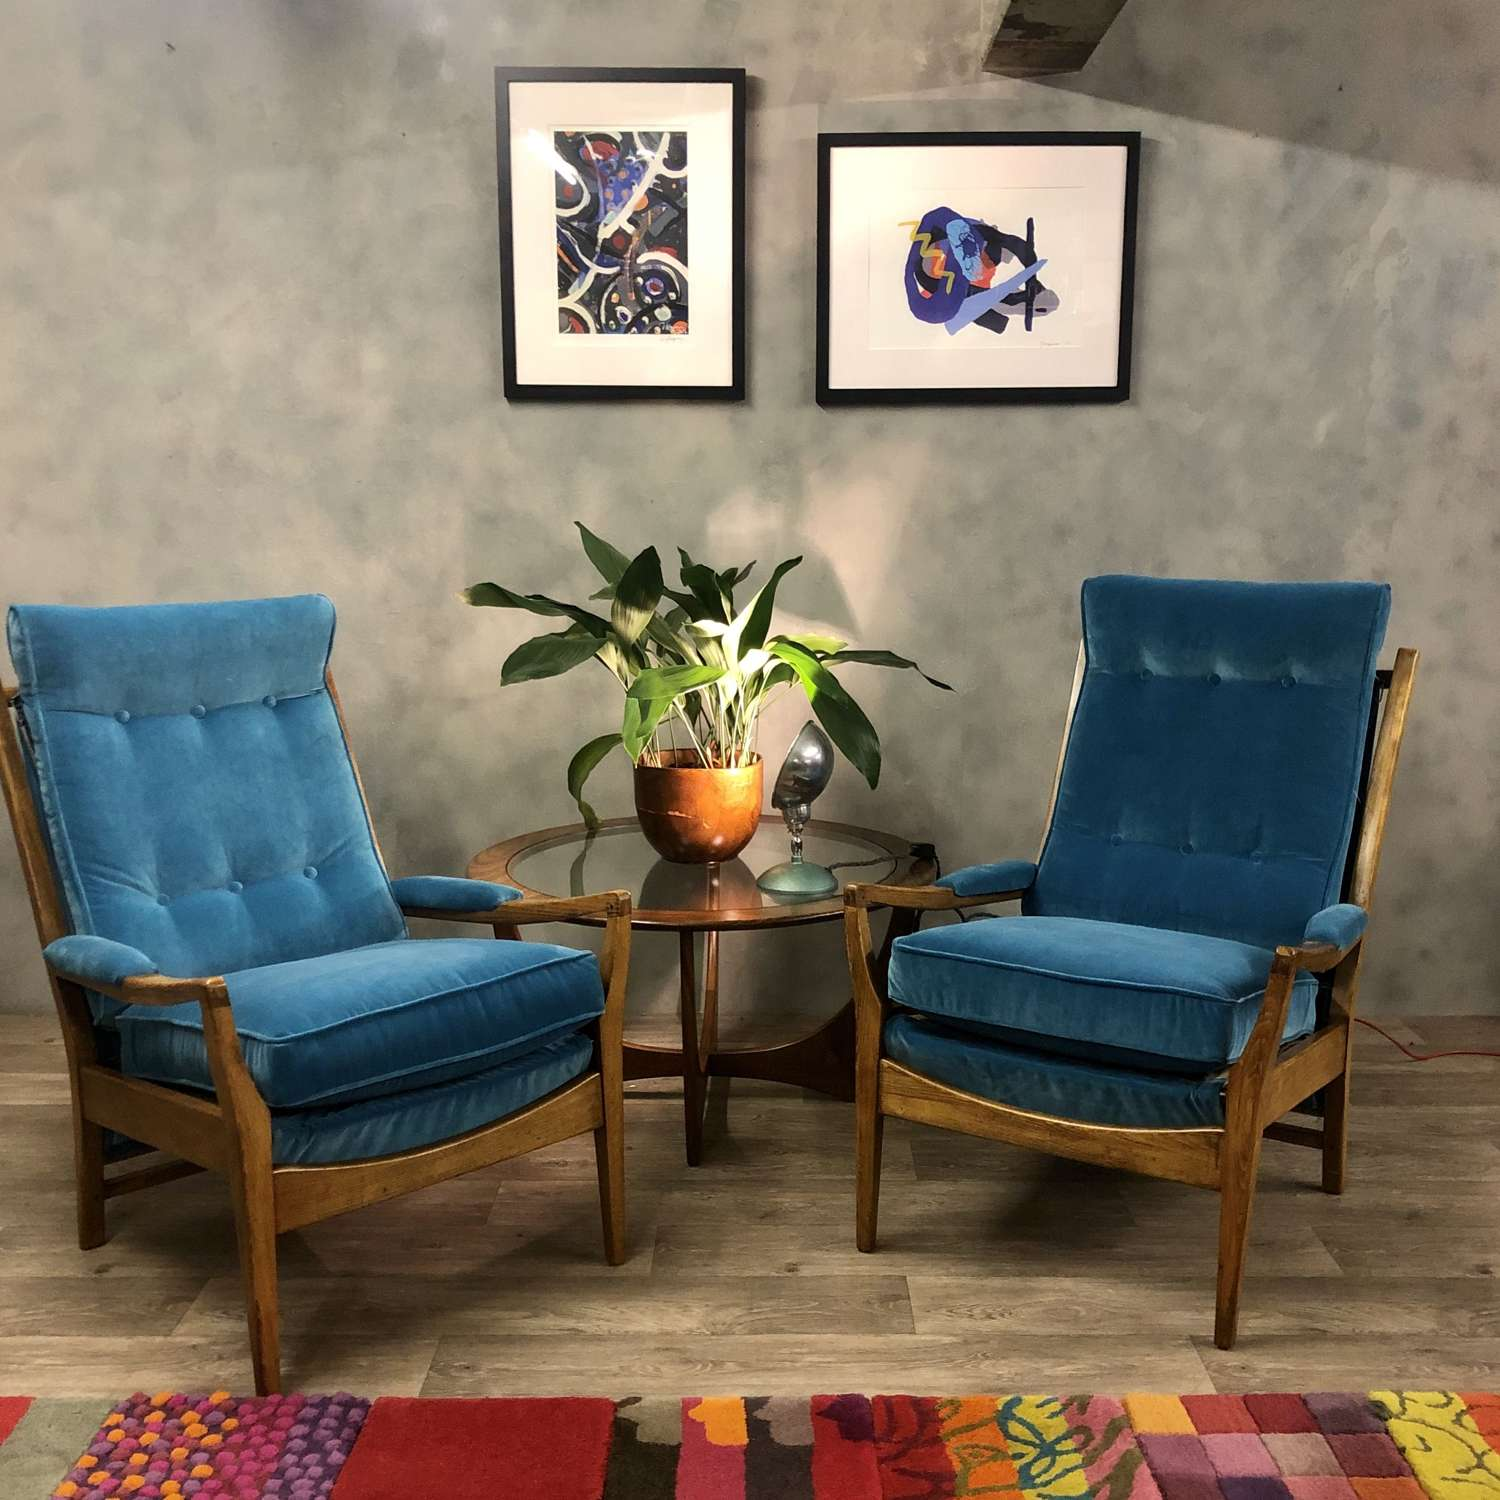 Midcentury lounge chairs (pair of) by Cintique in blue velvet